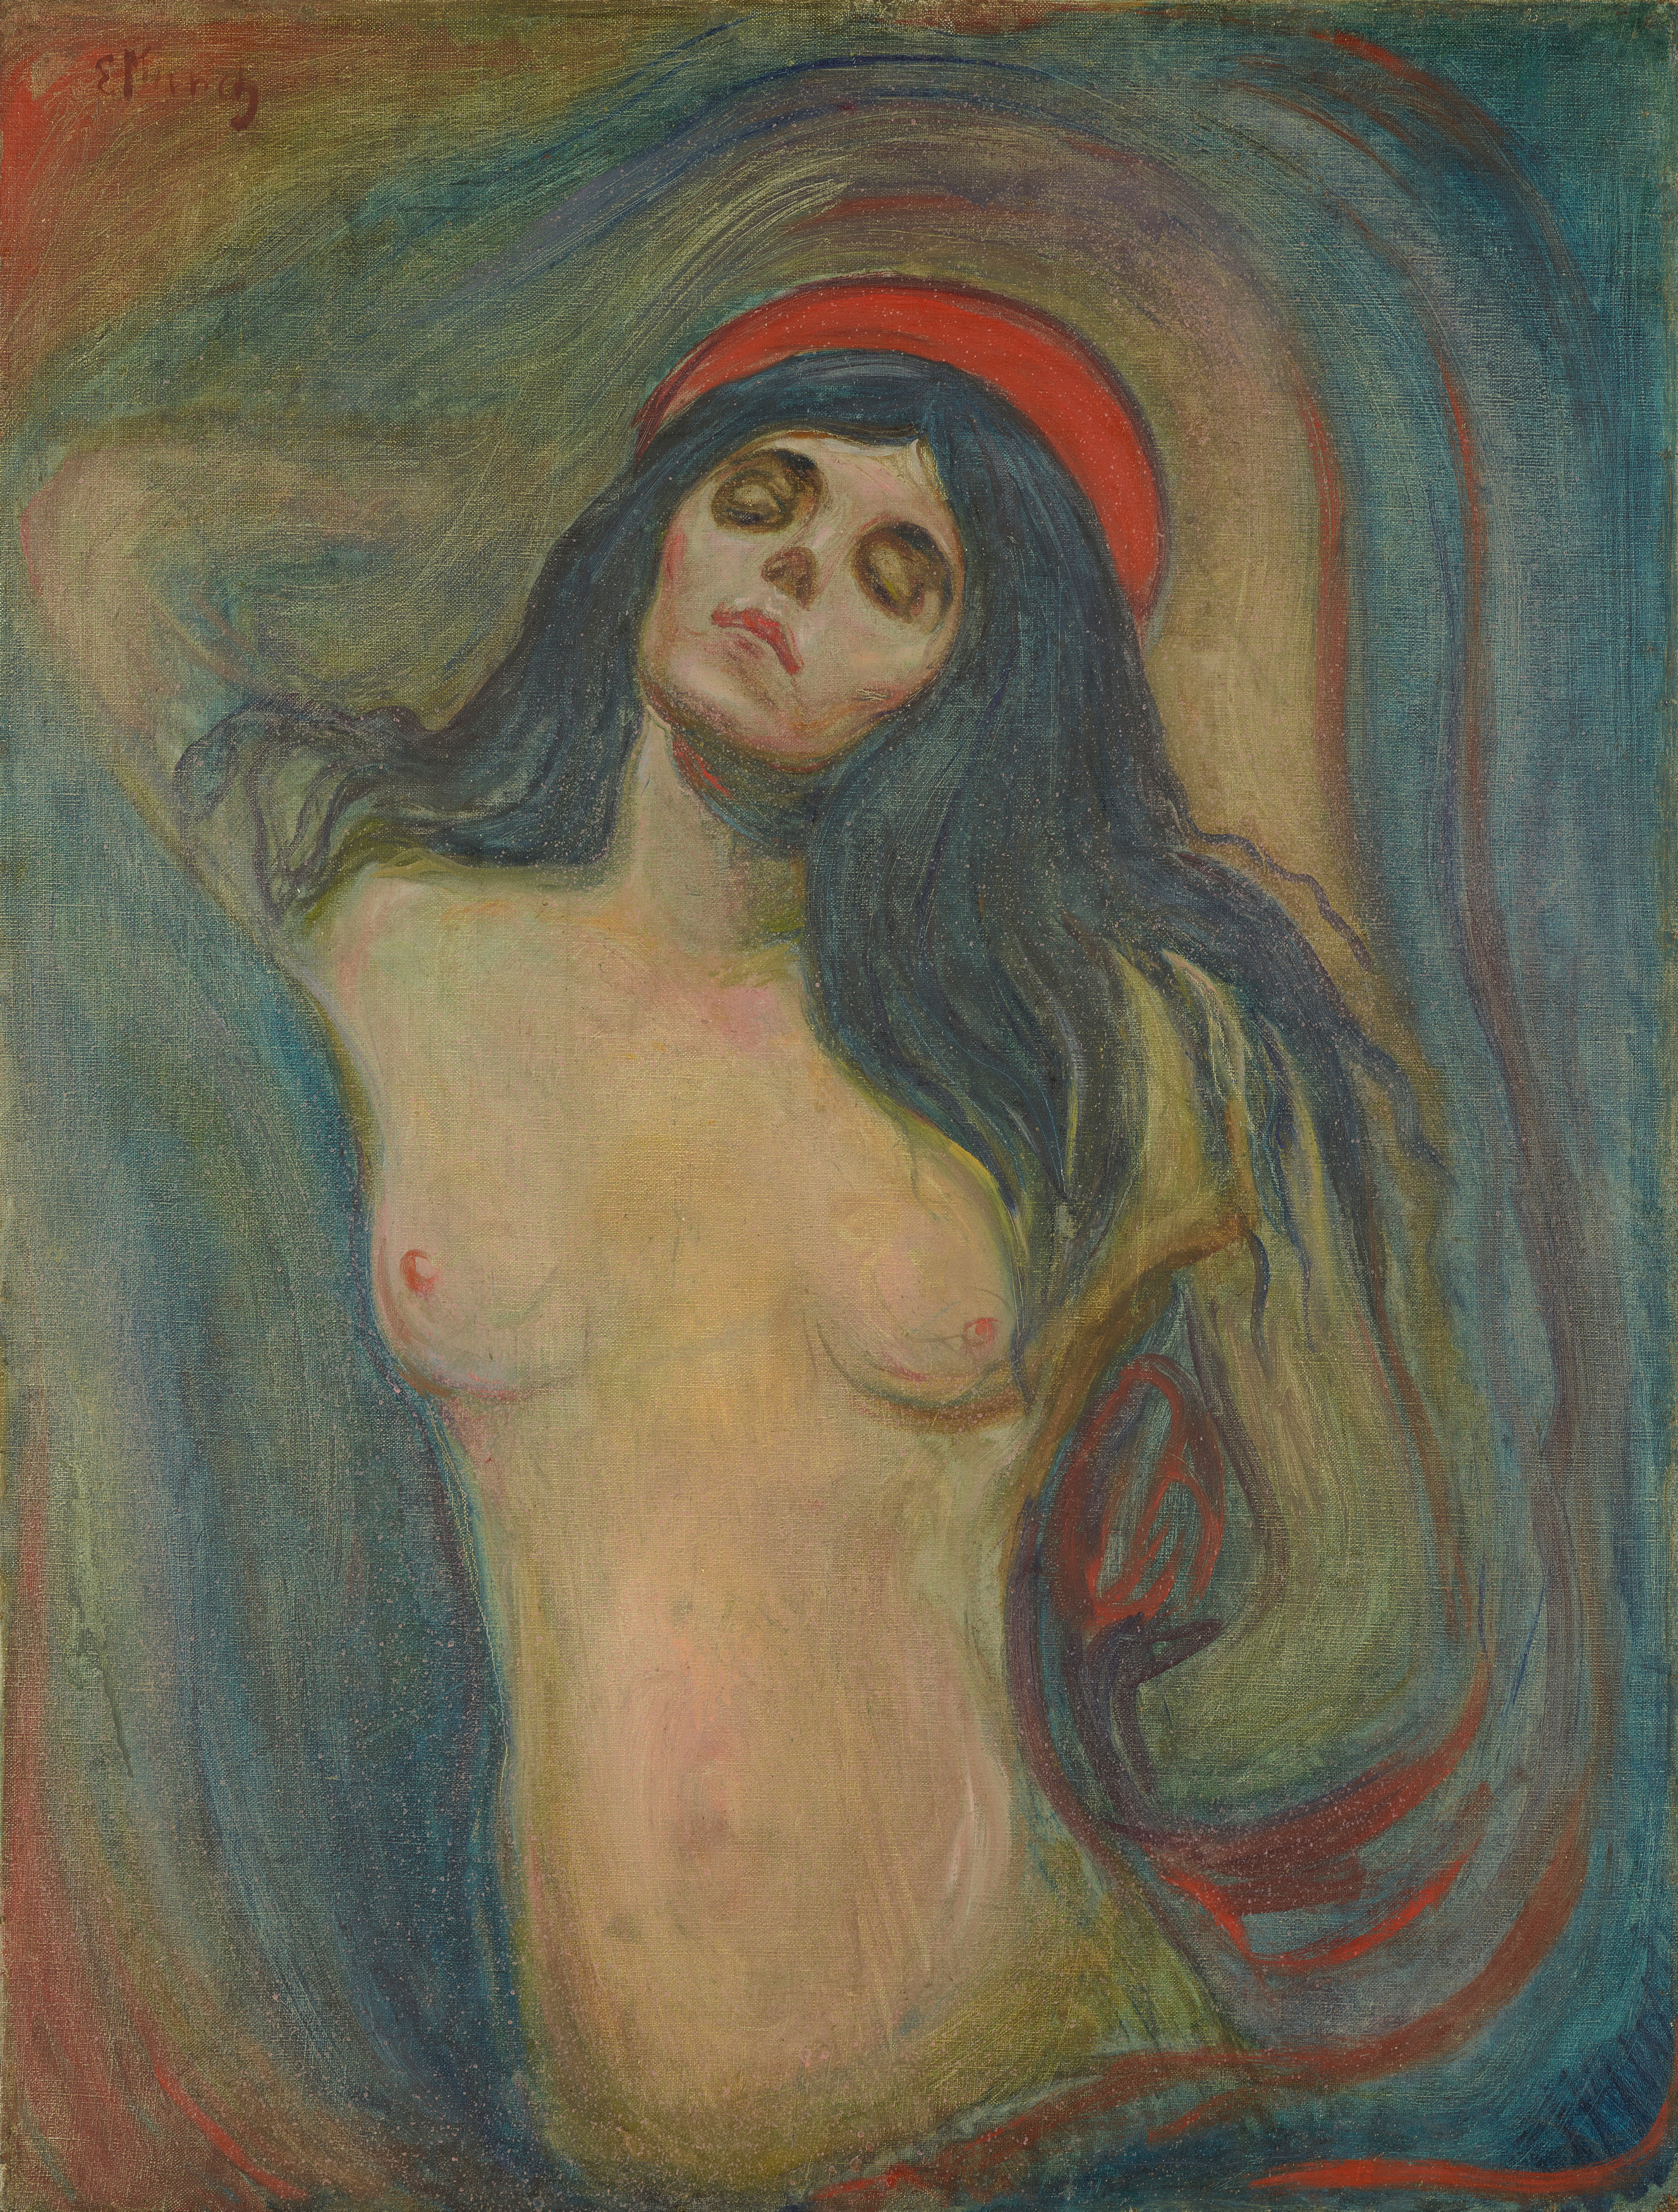 Edvard Munch: Madonna. Oil on canvas, 1894. Photo © Munchmuseet